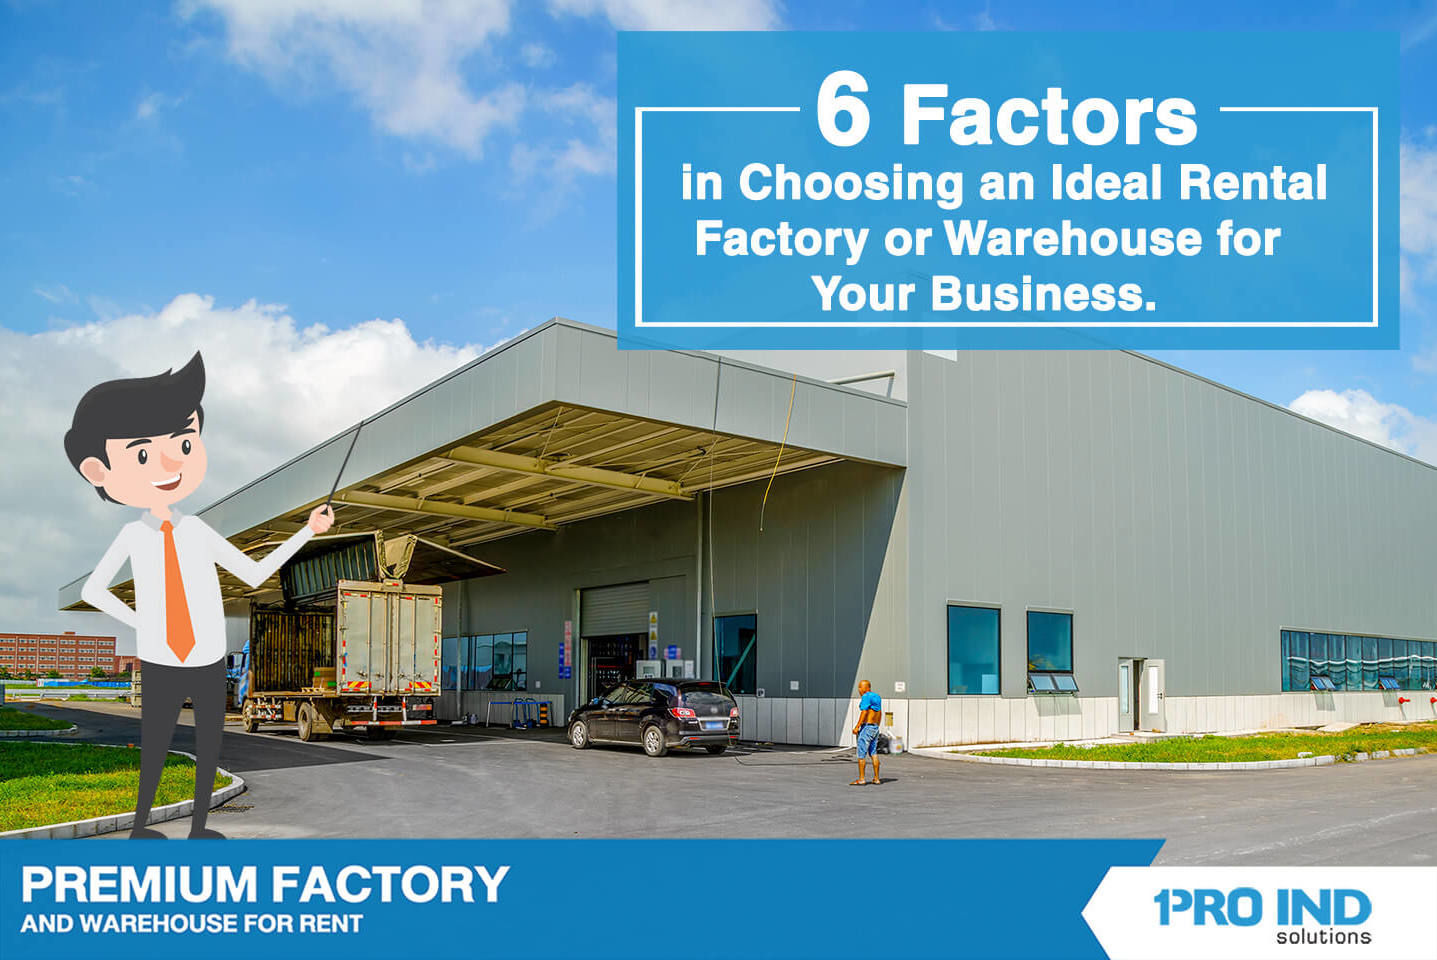 6 Factors in Choosing an Ideal Rental Factory or Warehouse for Your Business.